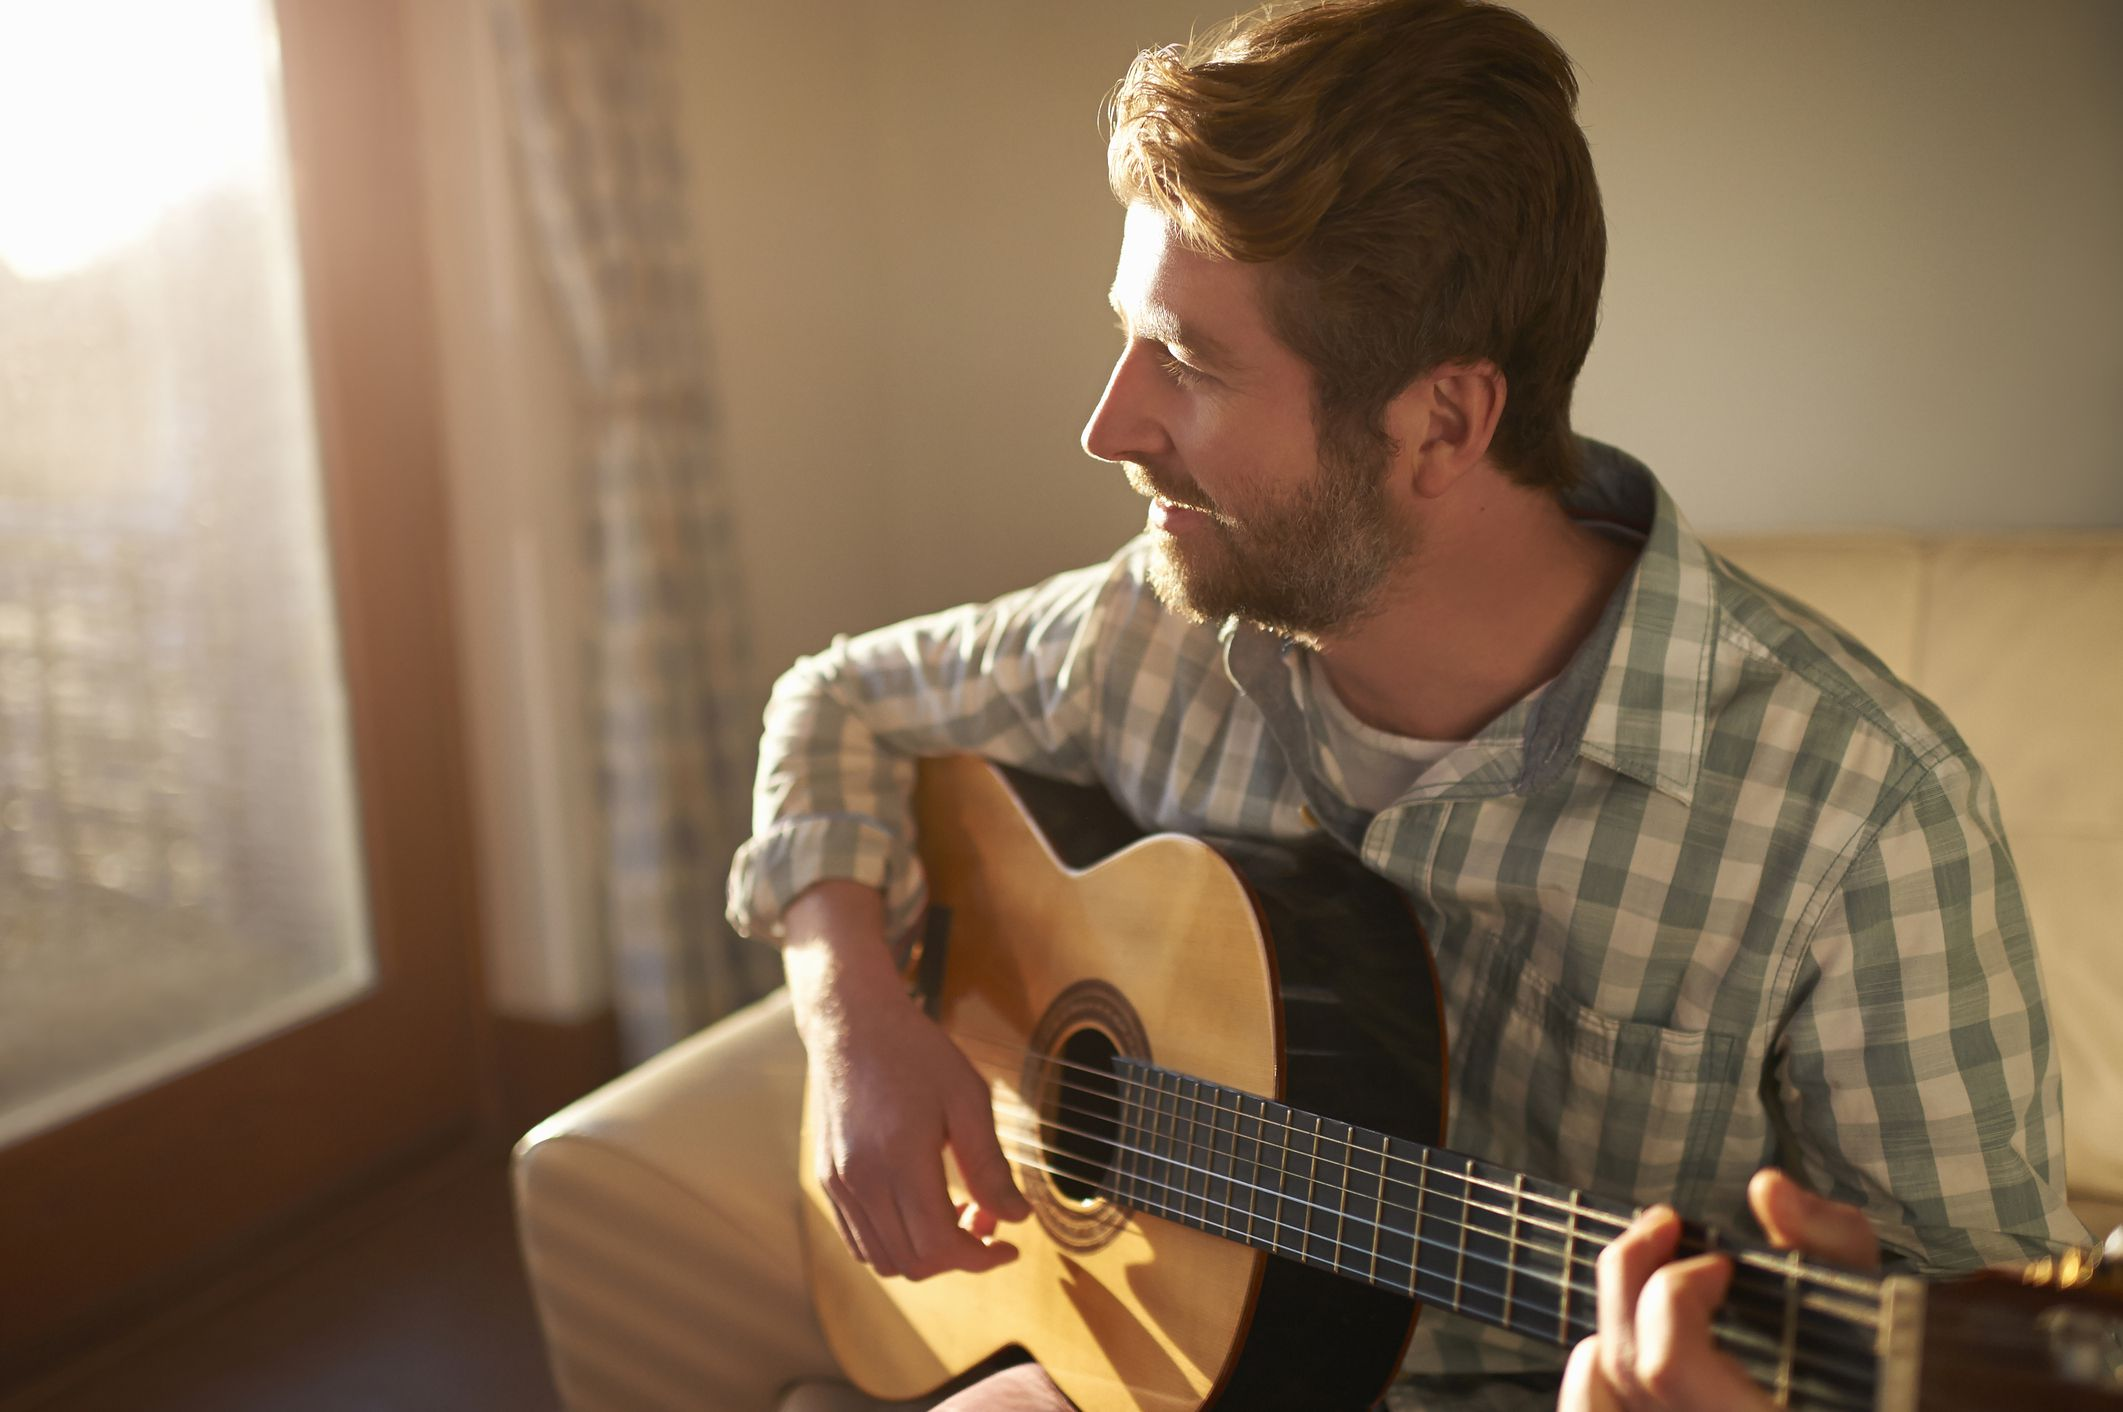 The Easiest Country Songs to Play on the Guitar